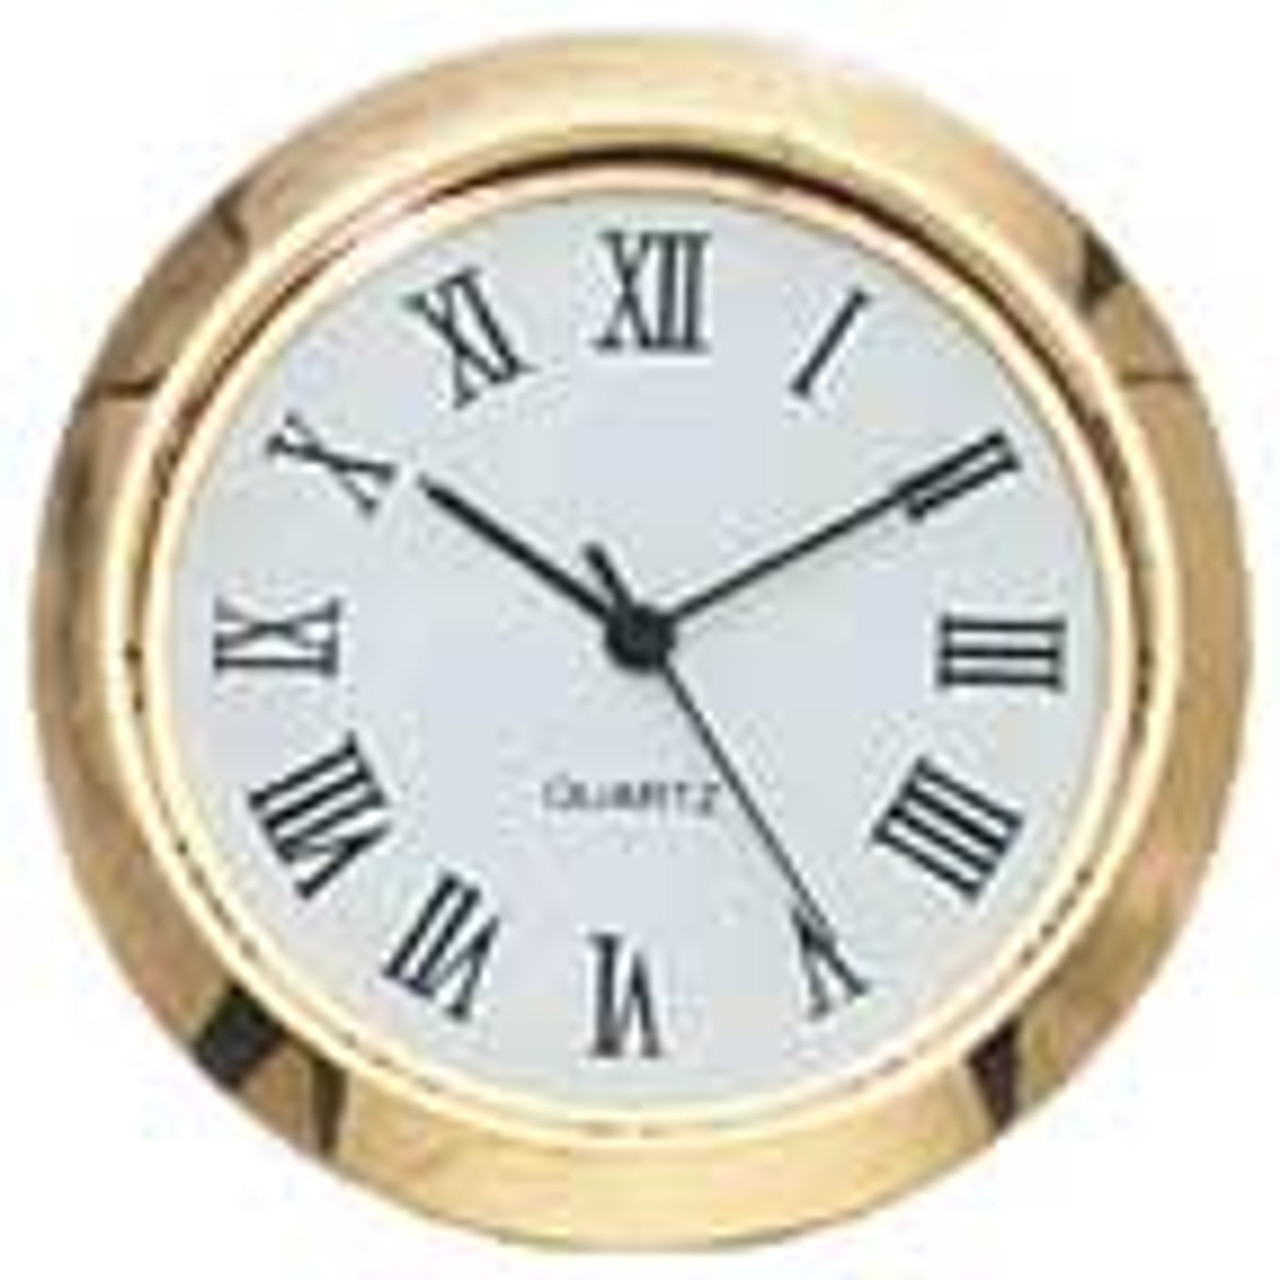 1-7/16 (36mm) White Face Roman Glass Lens Clock Insert/Fit Up